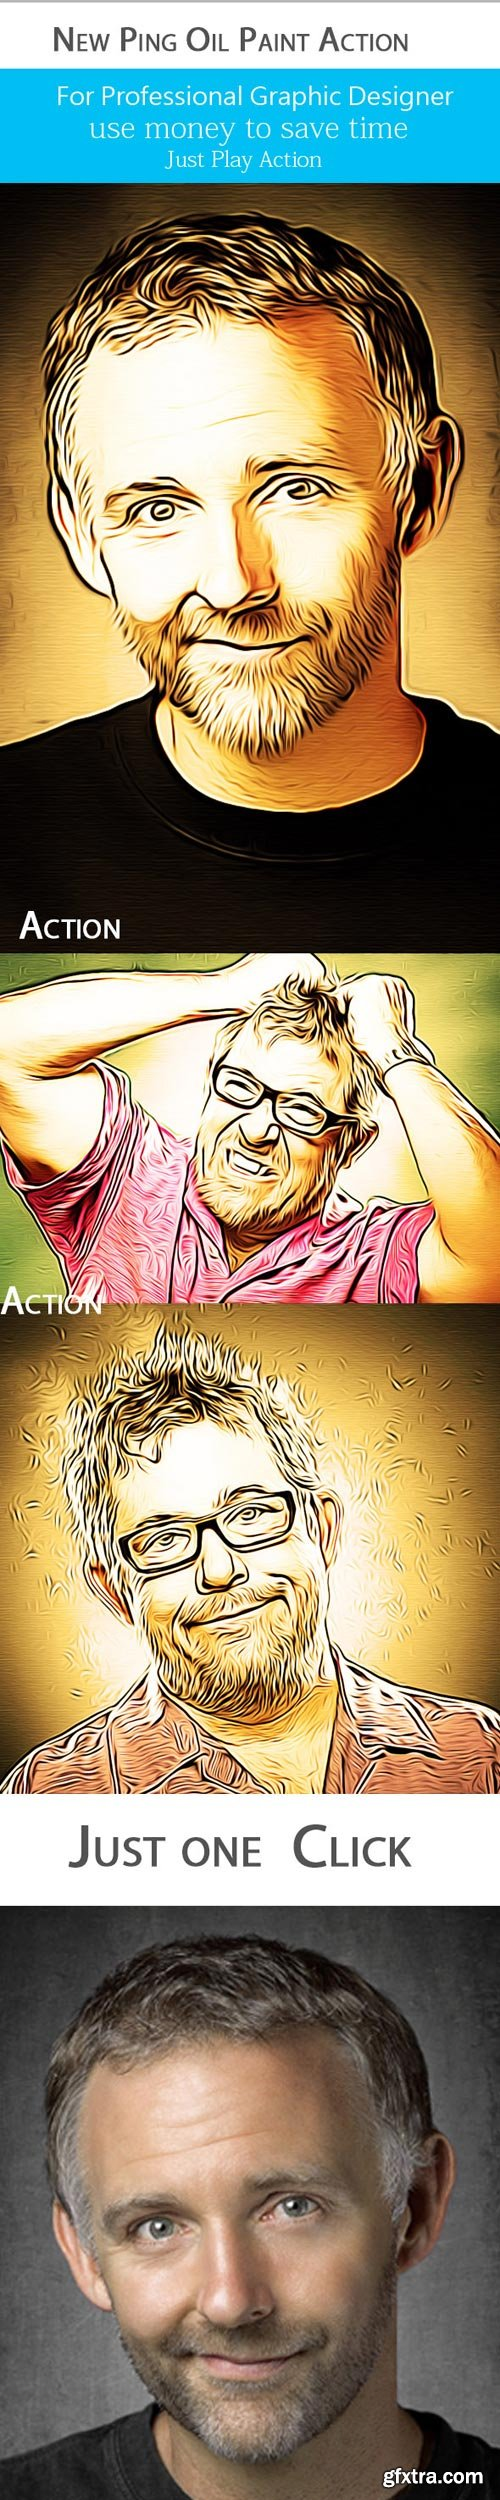 GraphicRiver - New Ping Oil Paint Action 9840172